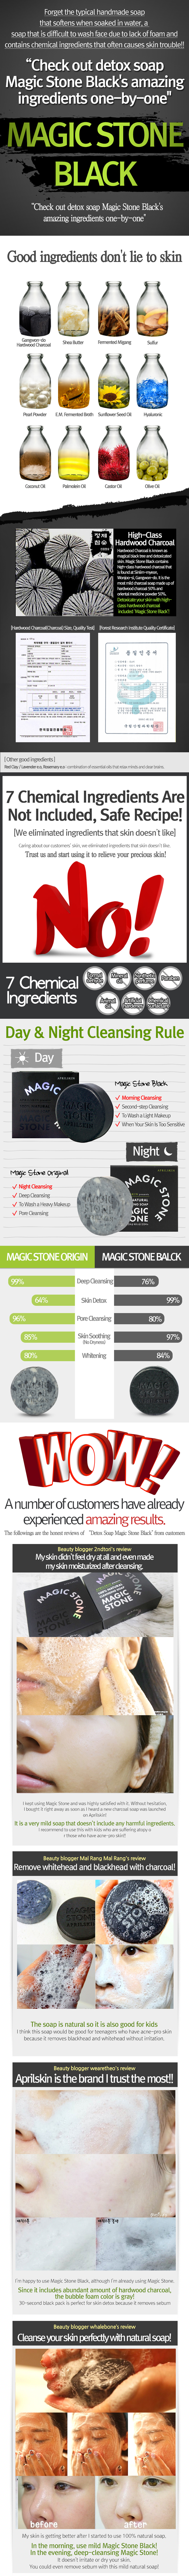 Magic stone black desc